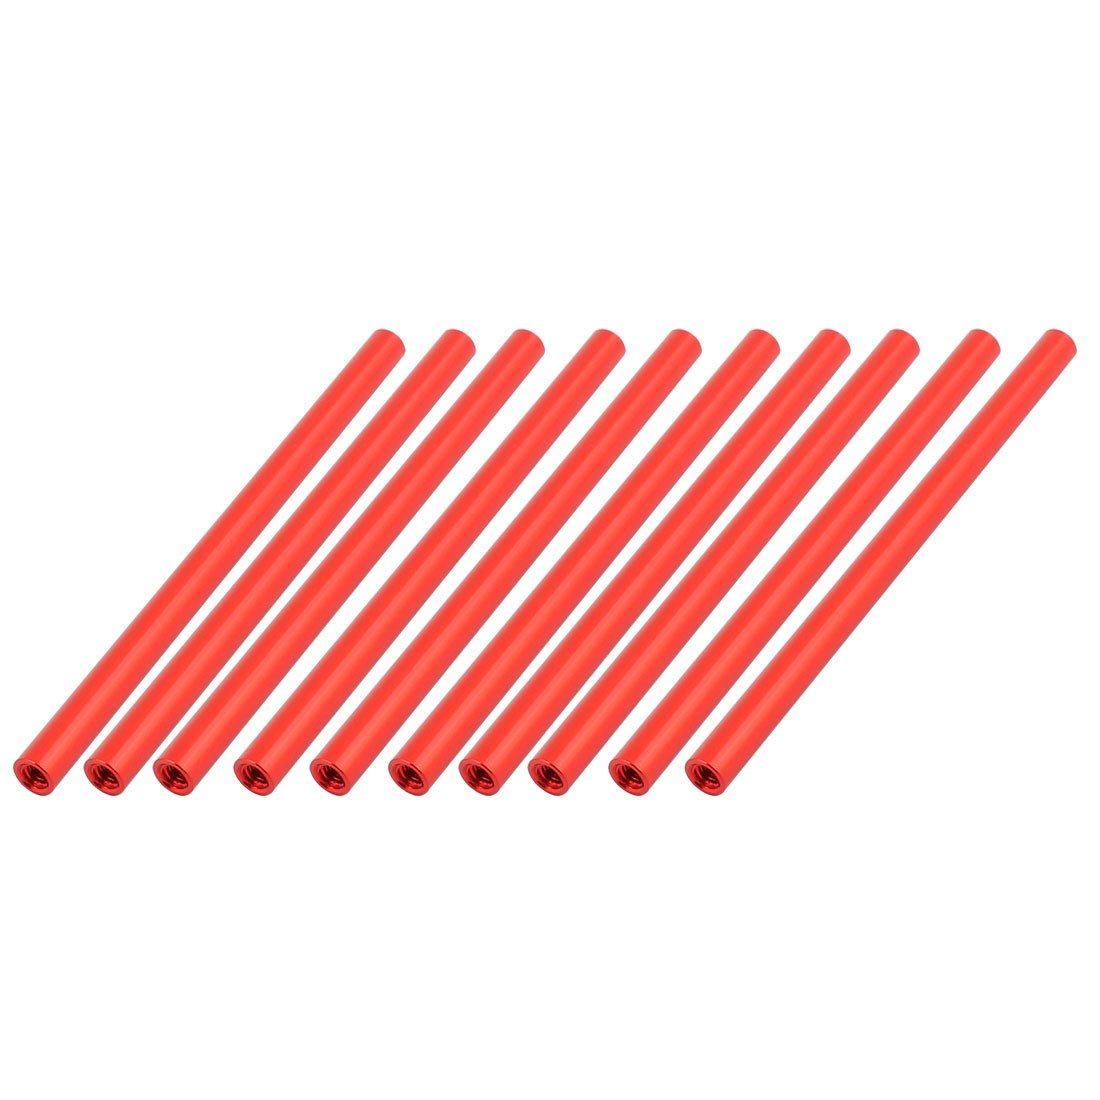 uxcell 10 Pcs M3 x 80mm Round Aluminum Column Alloy Standoff Spacer Stud Fastener for Quadcopter Red